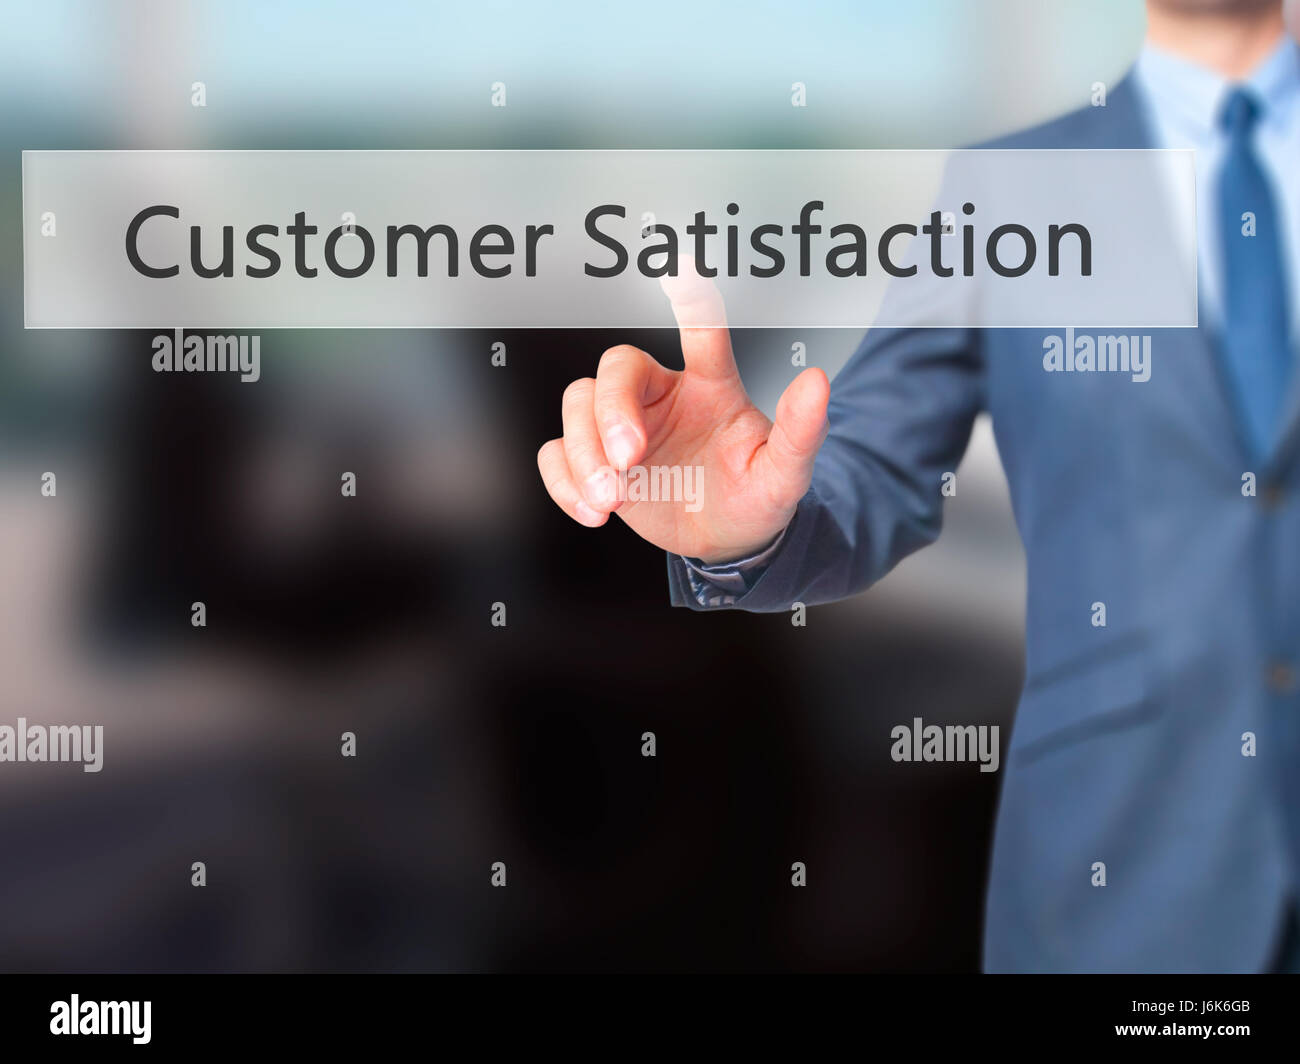 La Satisfaction du client - Businessman hand touch bouton sur l'interface de l'écran virtuel. Entreprises, Photo Stock